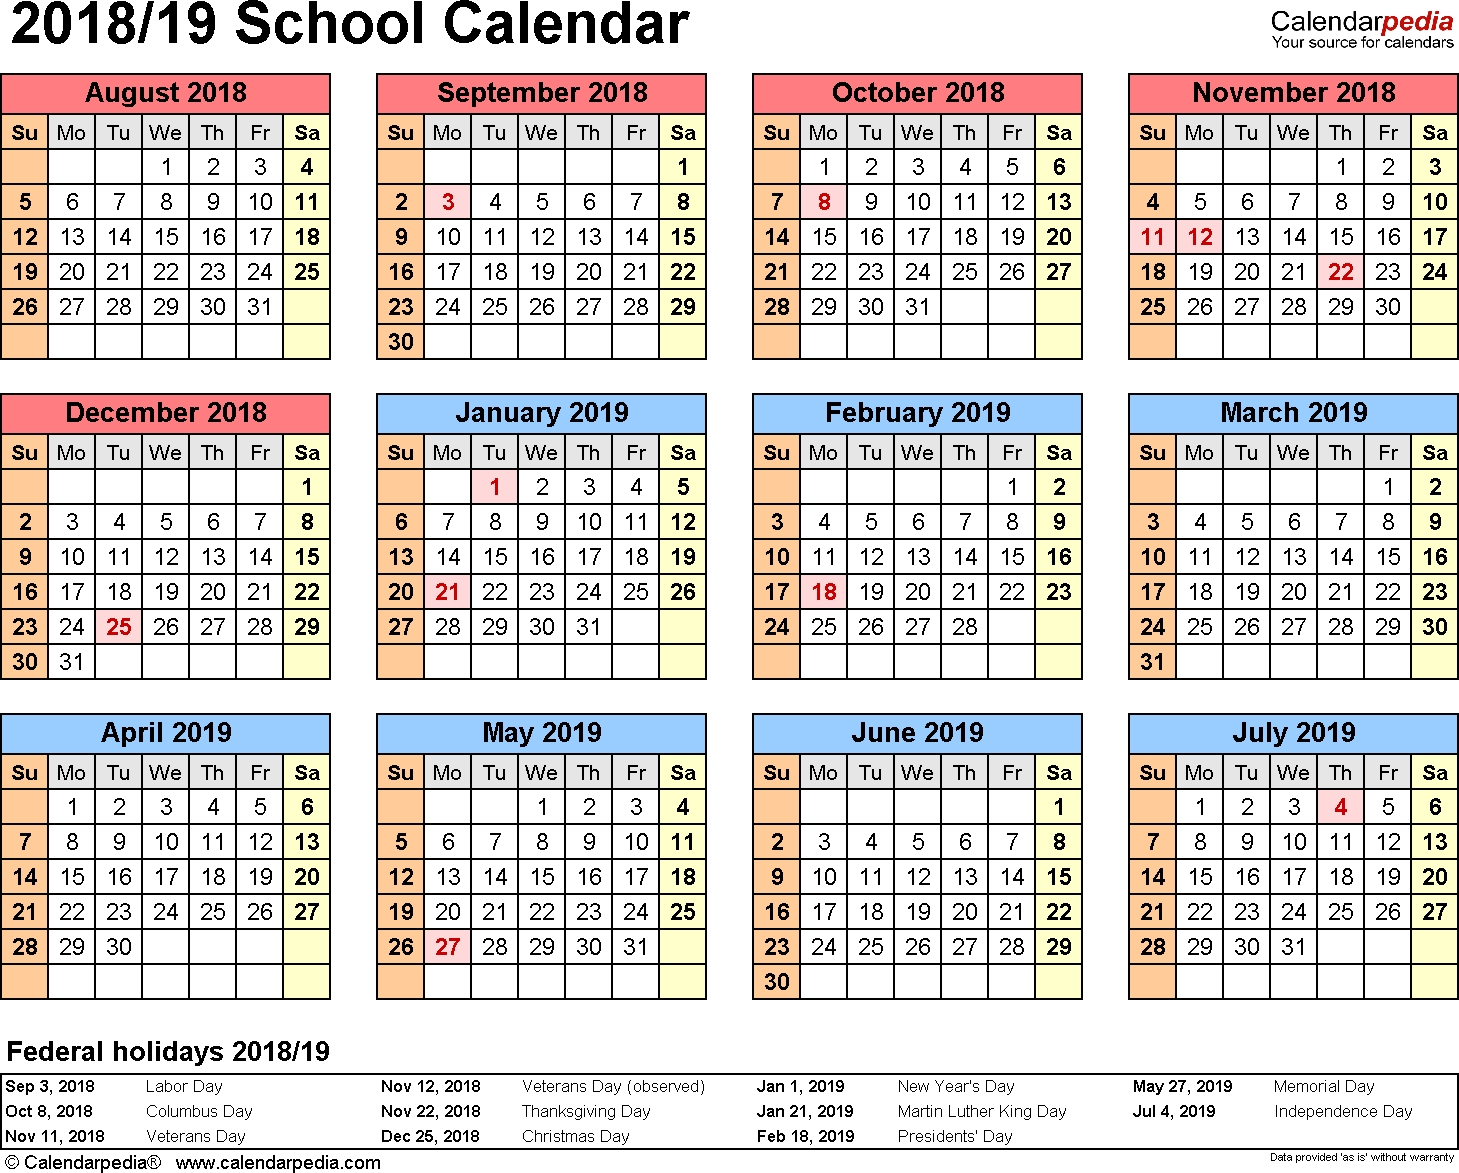 School Calendars 2018/2019 As Free Printable Word Templates_Year Calendar In School